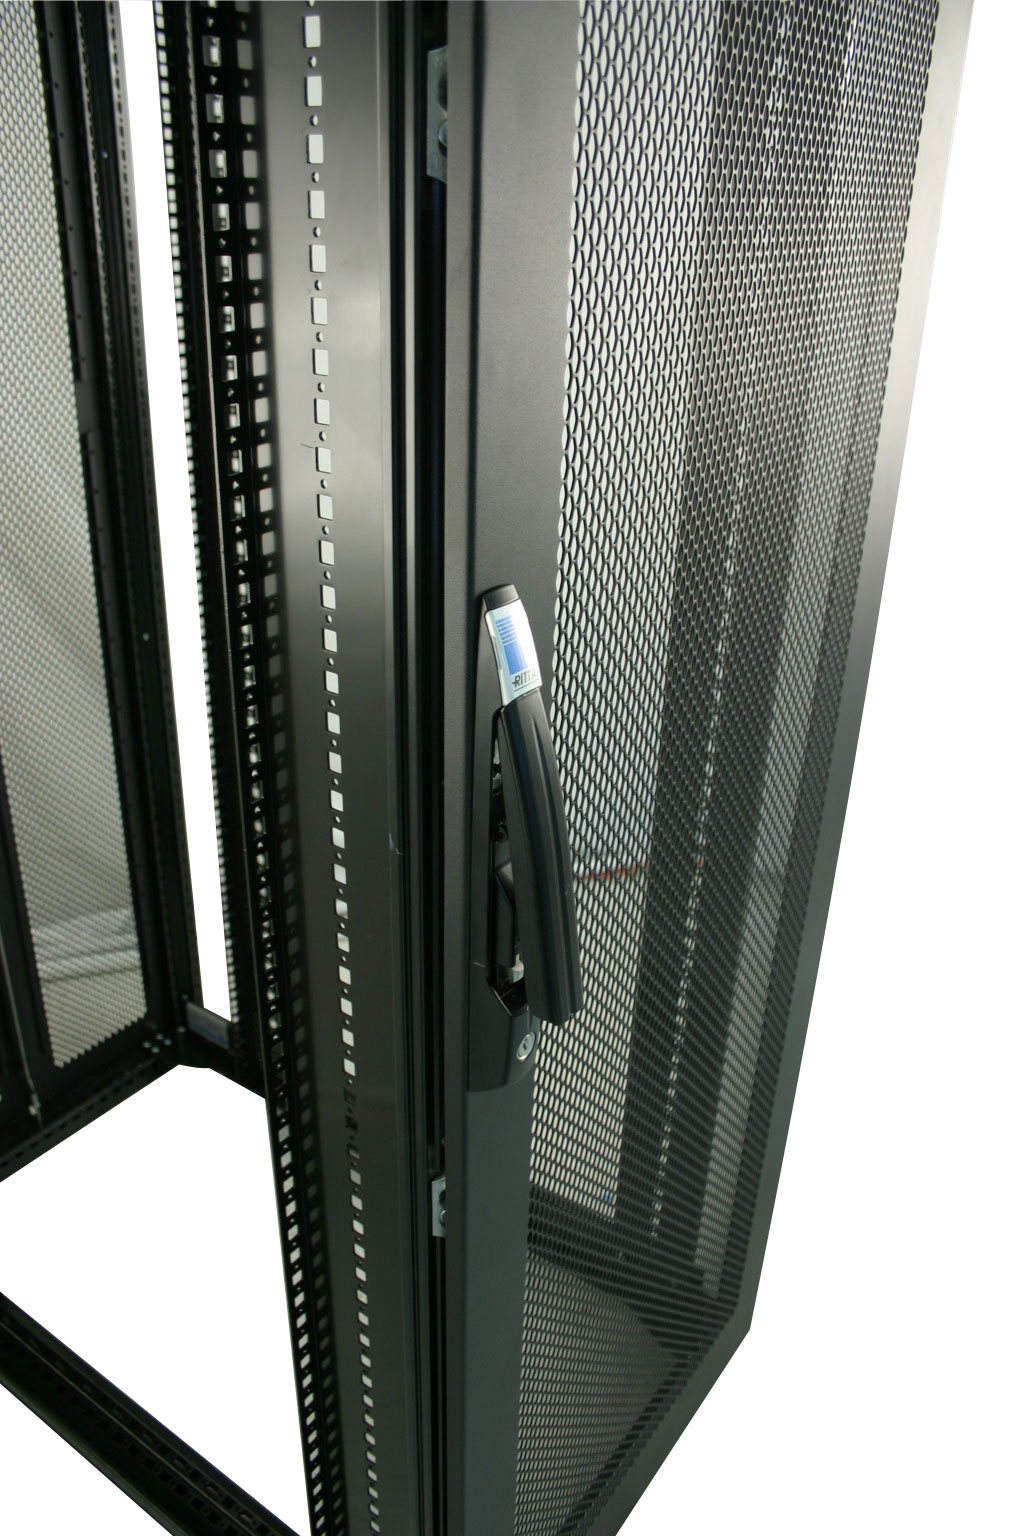 server view computer glass cabinet network tempered door clipped deep floor standing rev black rack data with front lock